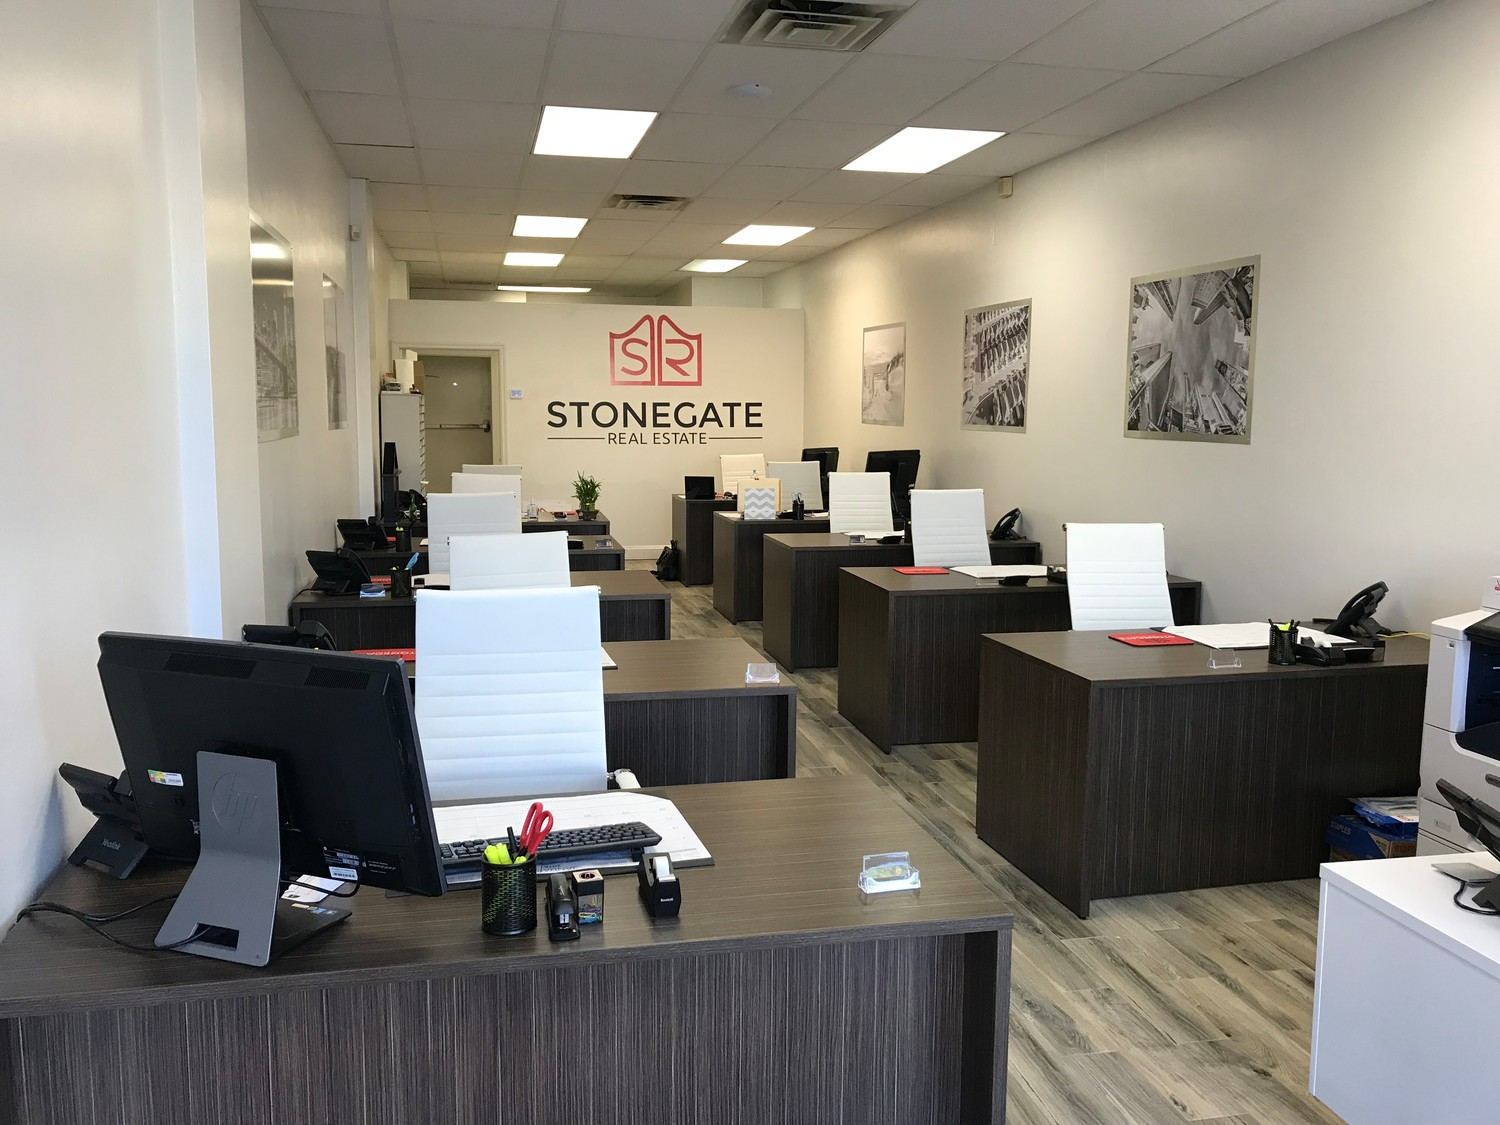 New in Oceanside this April, Stonegate Real Estate provides professional services for clients and extensive training opportunities for new agents, according to co-founder and broker Anthony Ponte.